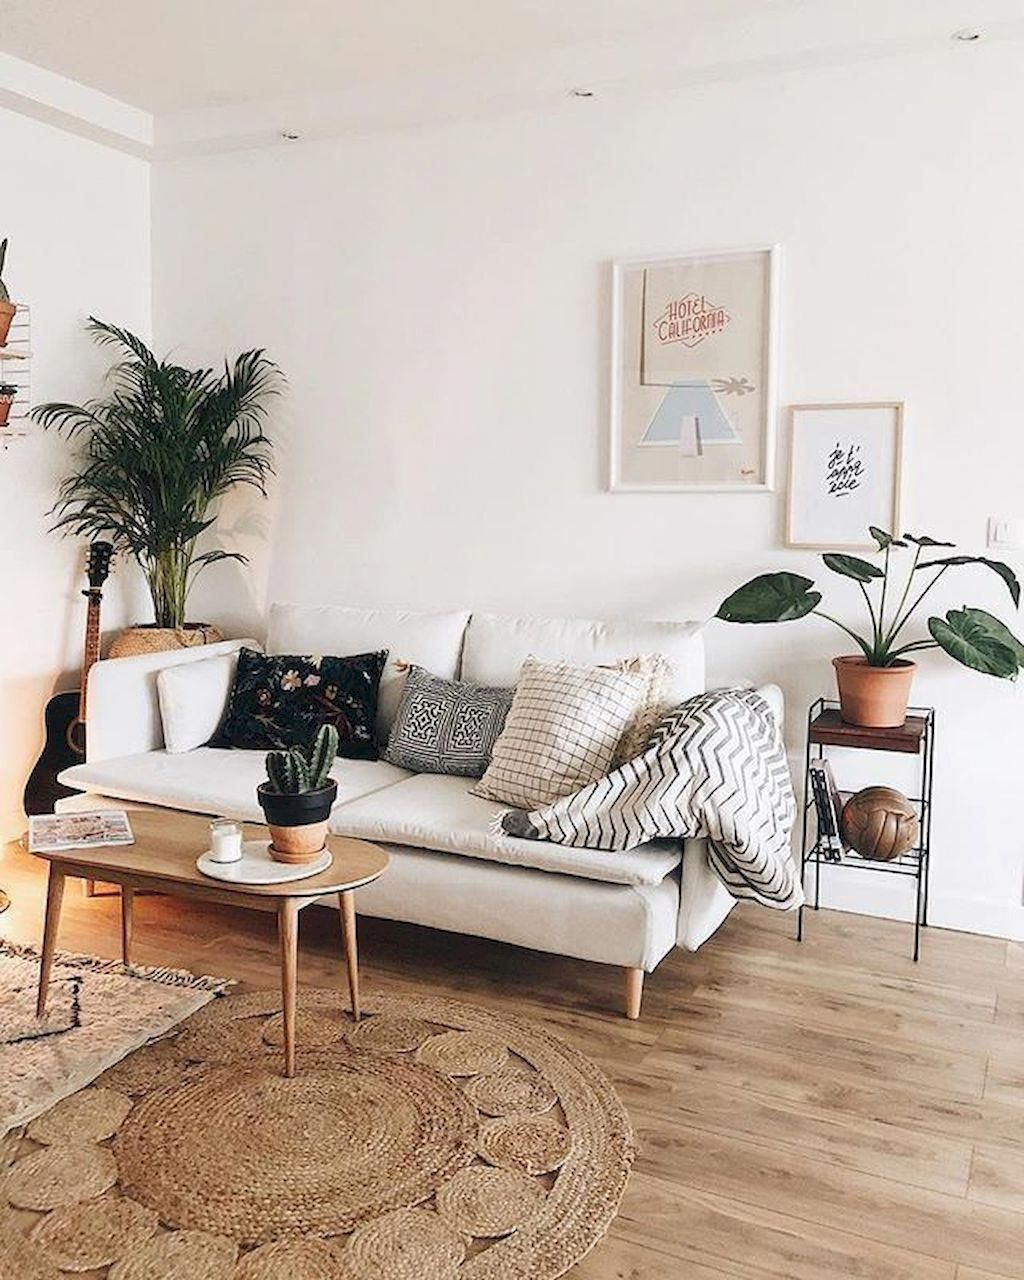 Minimal Living Room Inspiration: 8 Low-cost Street Lights To Brighten Your Interior (With